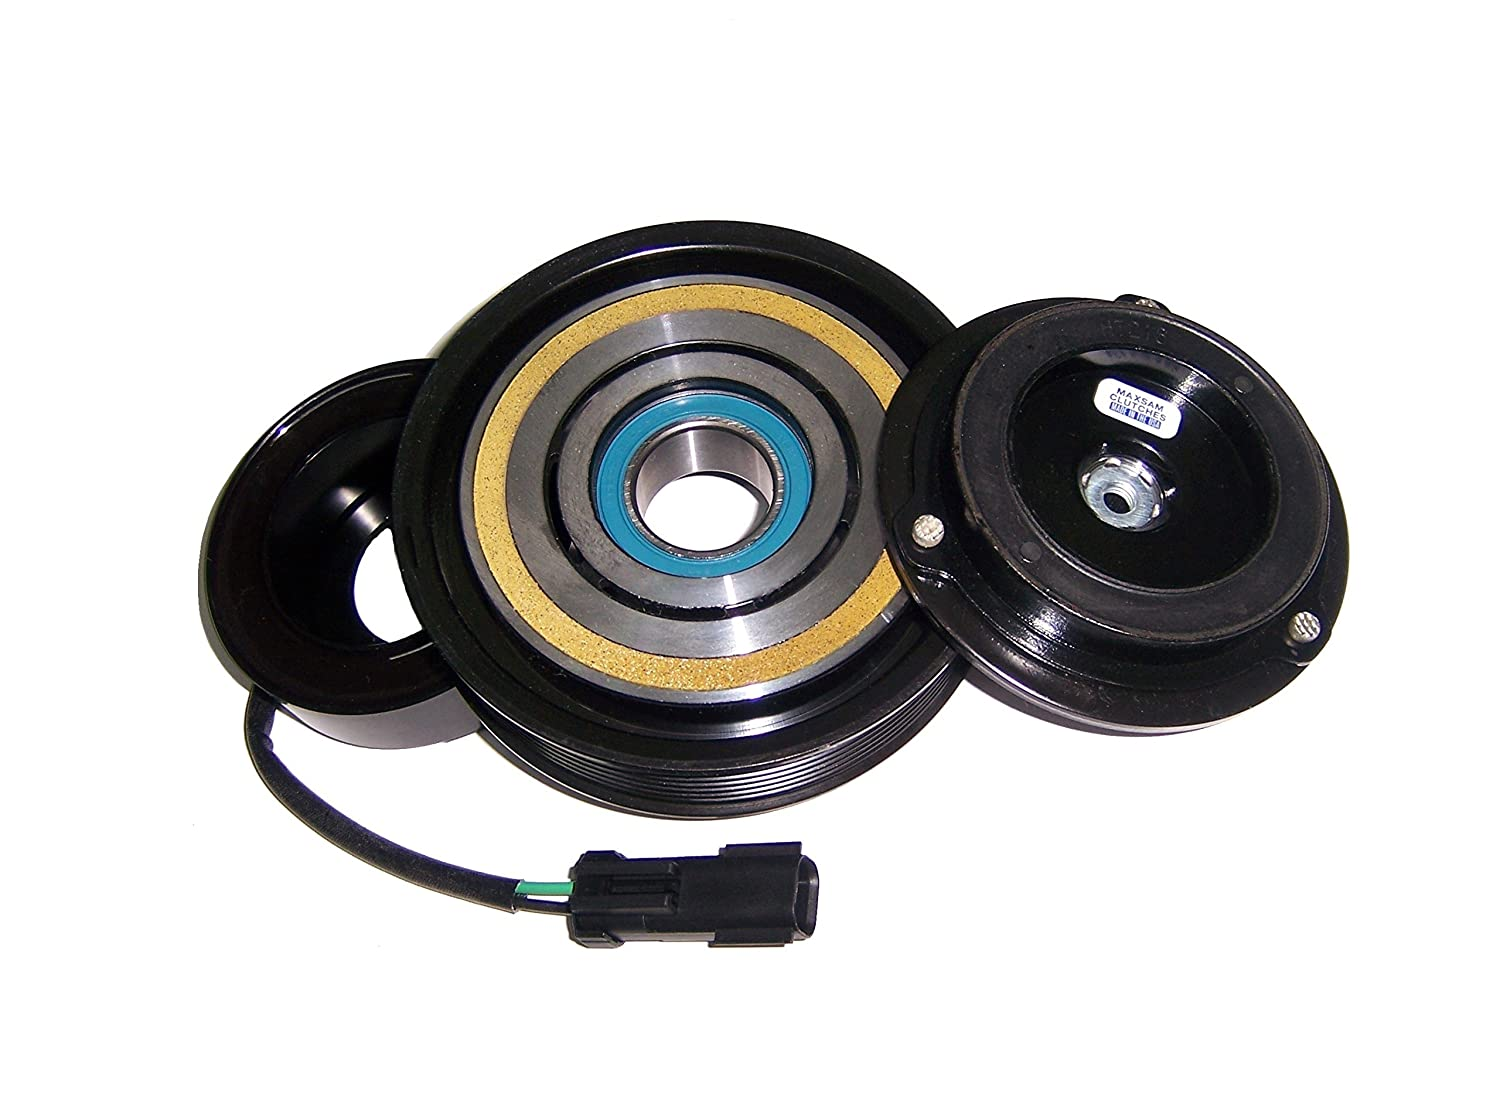 Made in the USA by Maxsam Clutches. For OEM compressor only AC Compressor Clutch Fits; 2003-2008 Dodge Ram 2500 5.7 liter Gas Engine